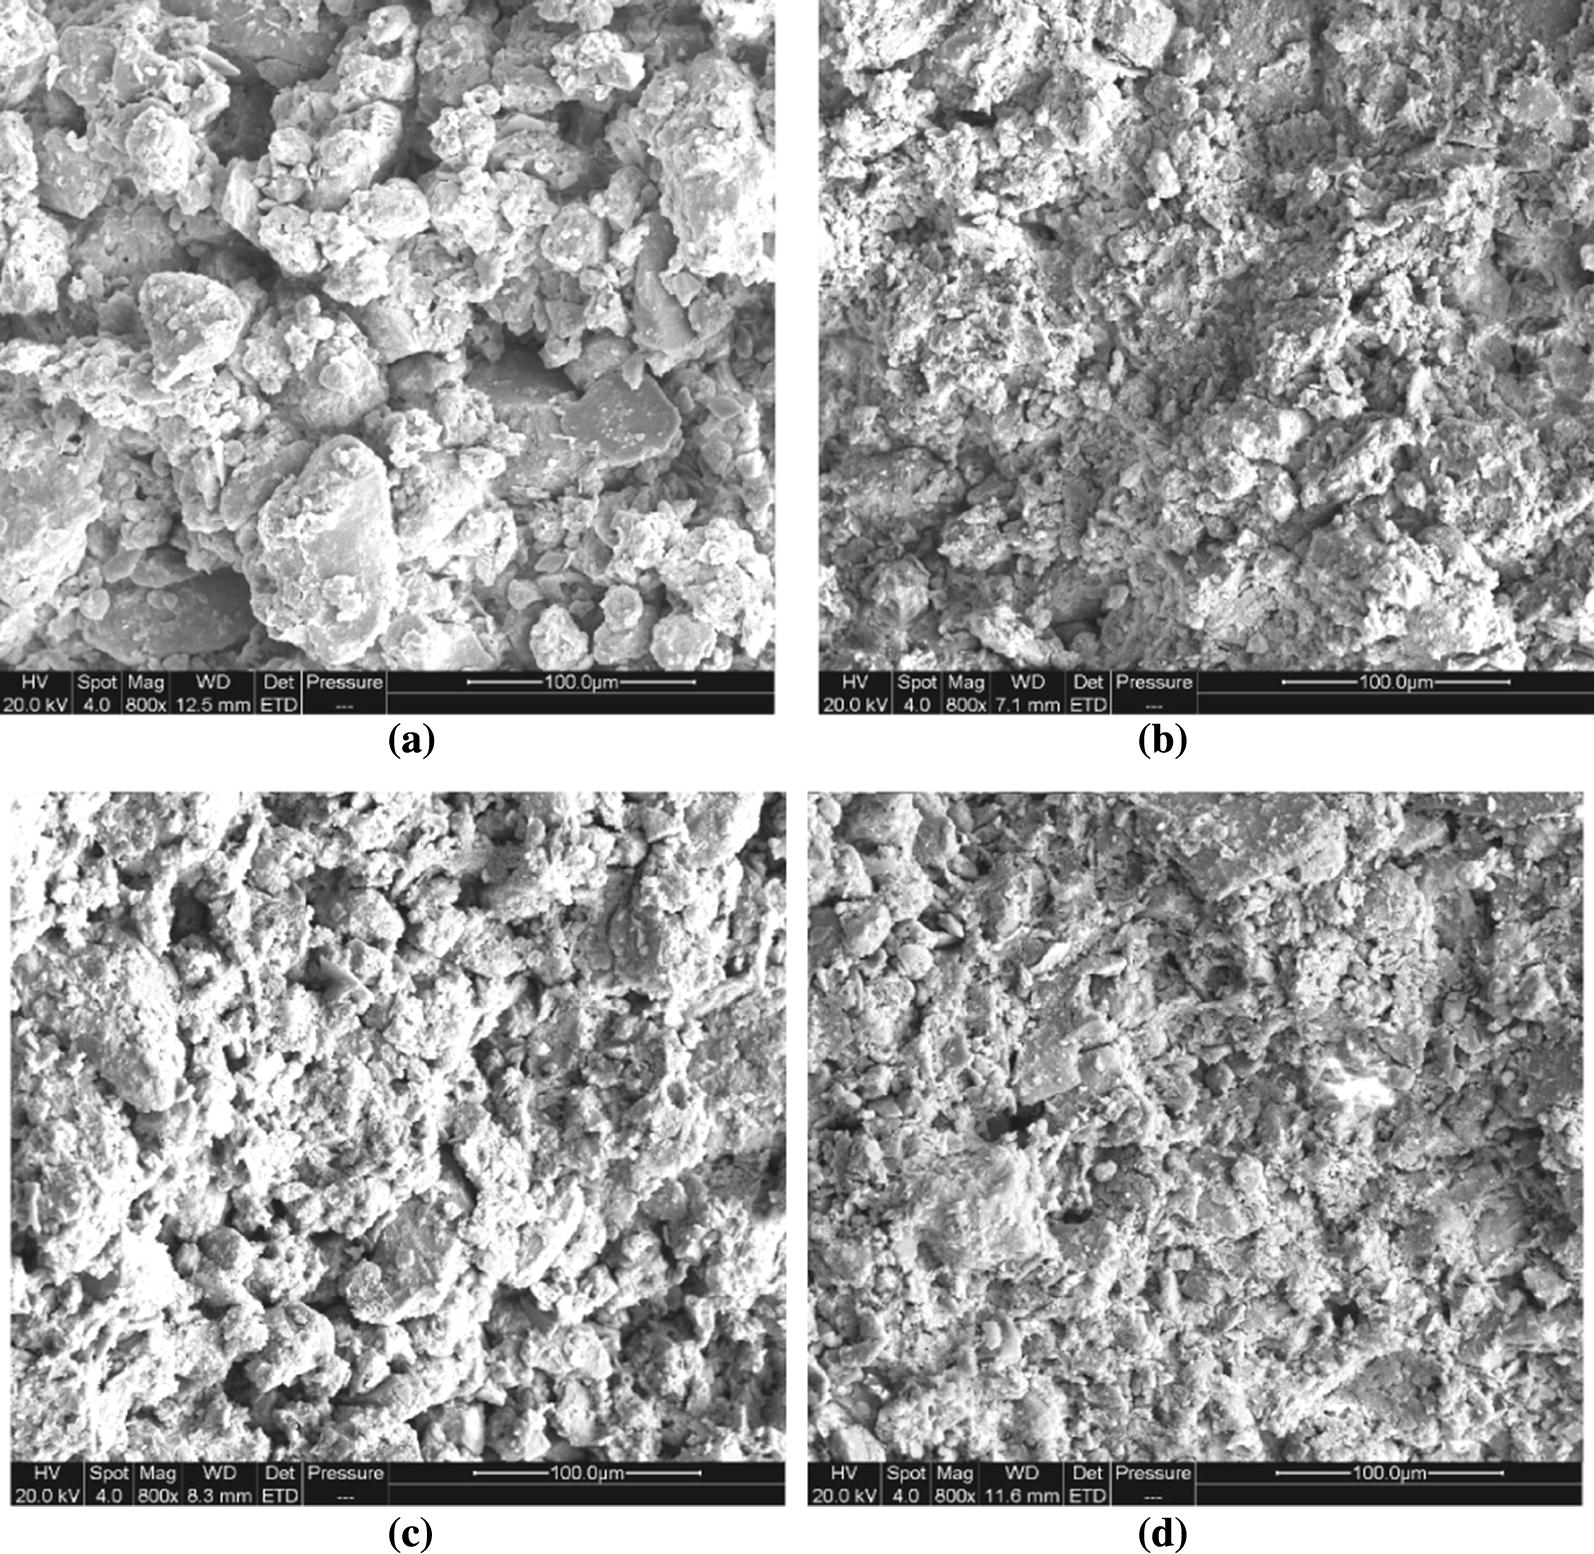 Change in pore-size distribution of collapsible loess due to loading